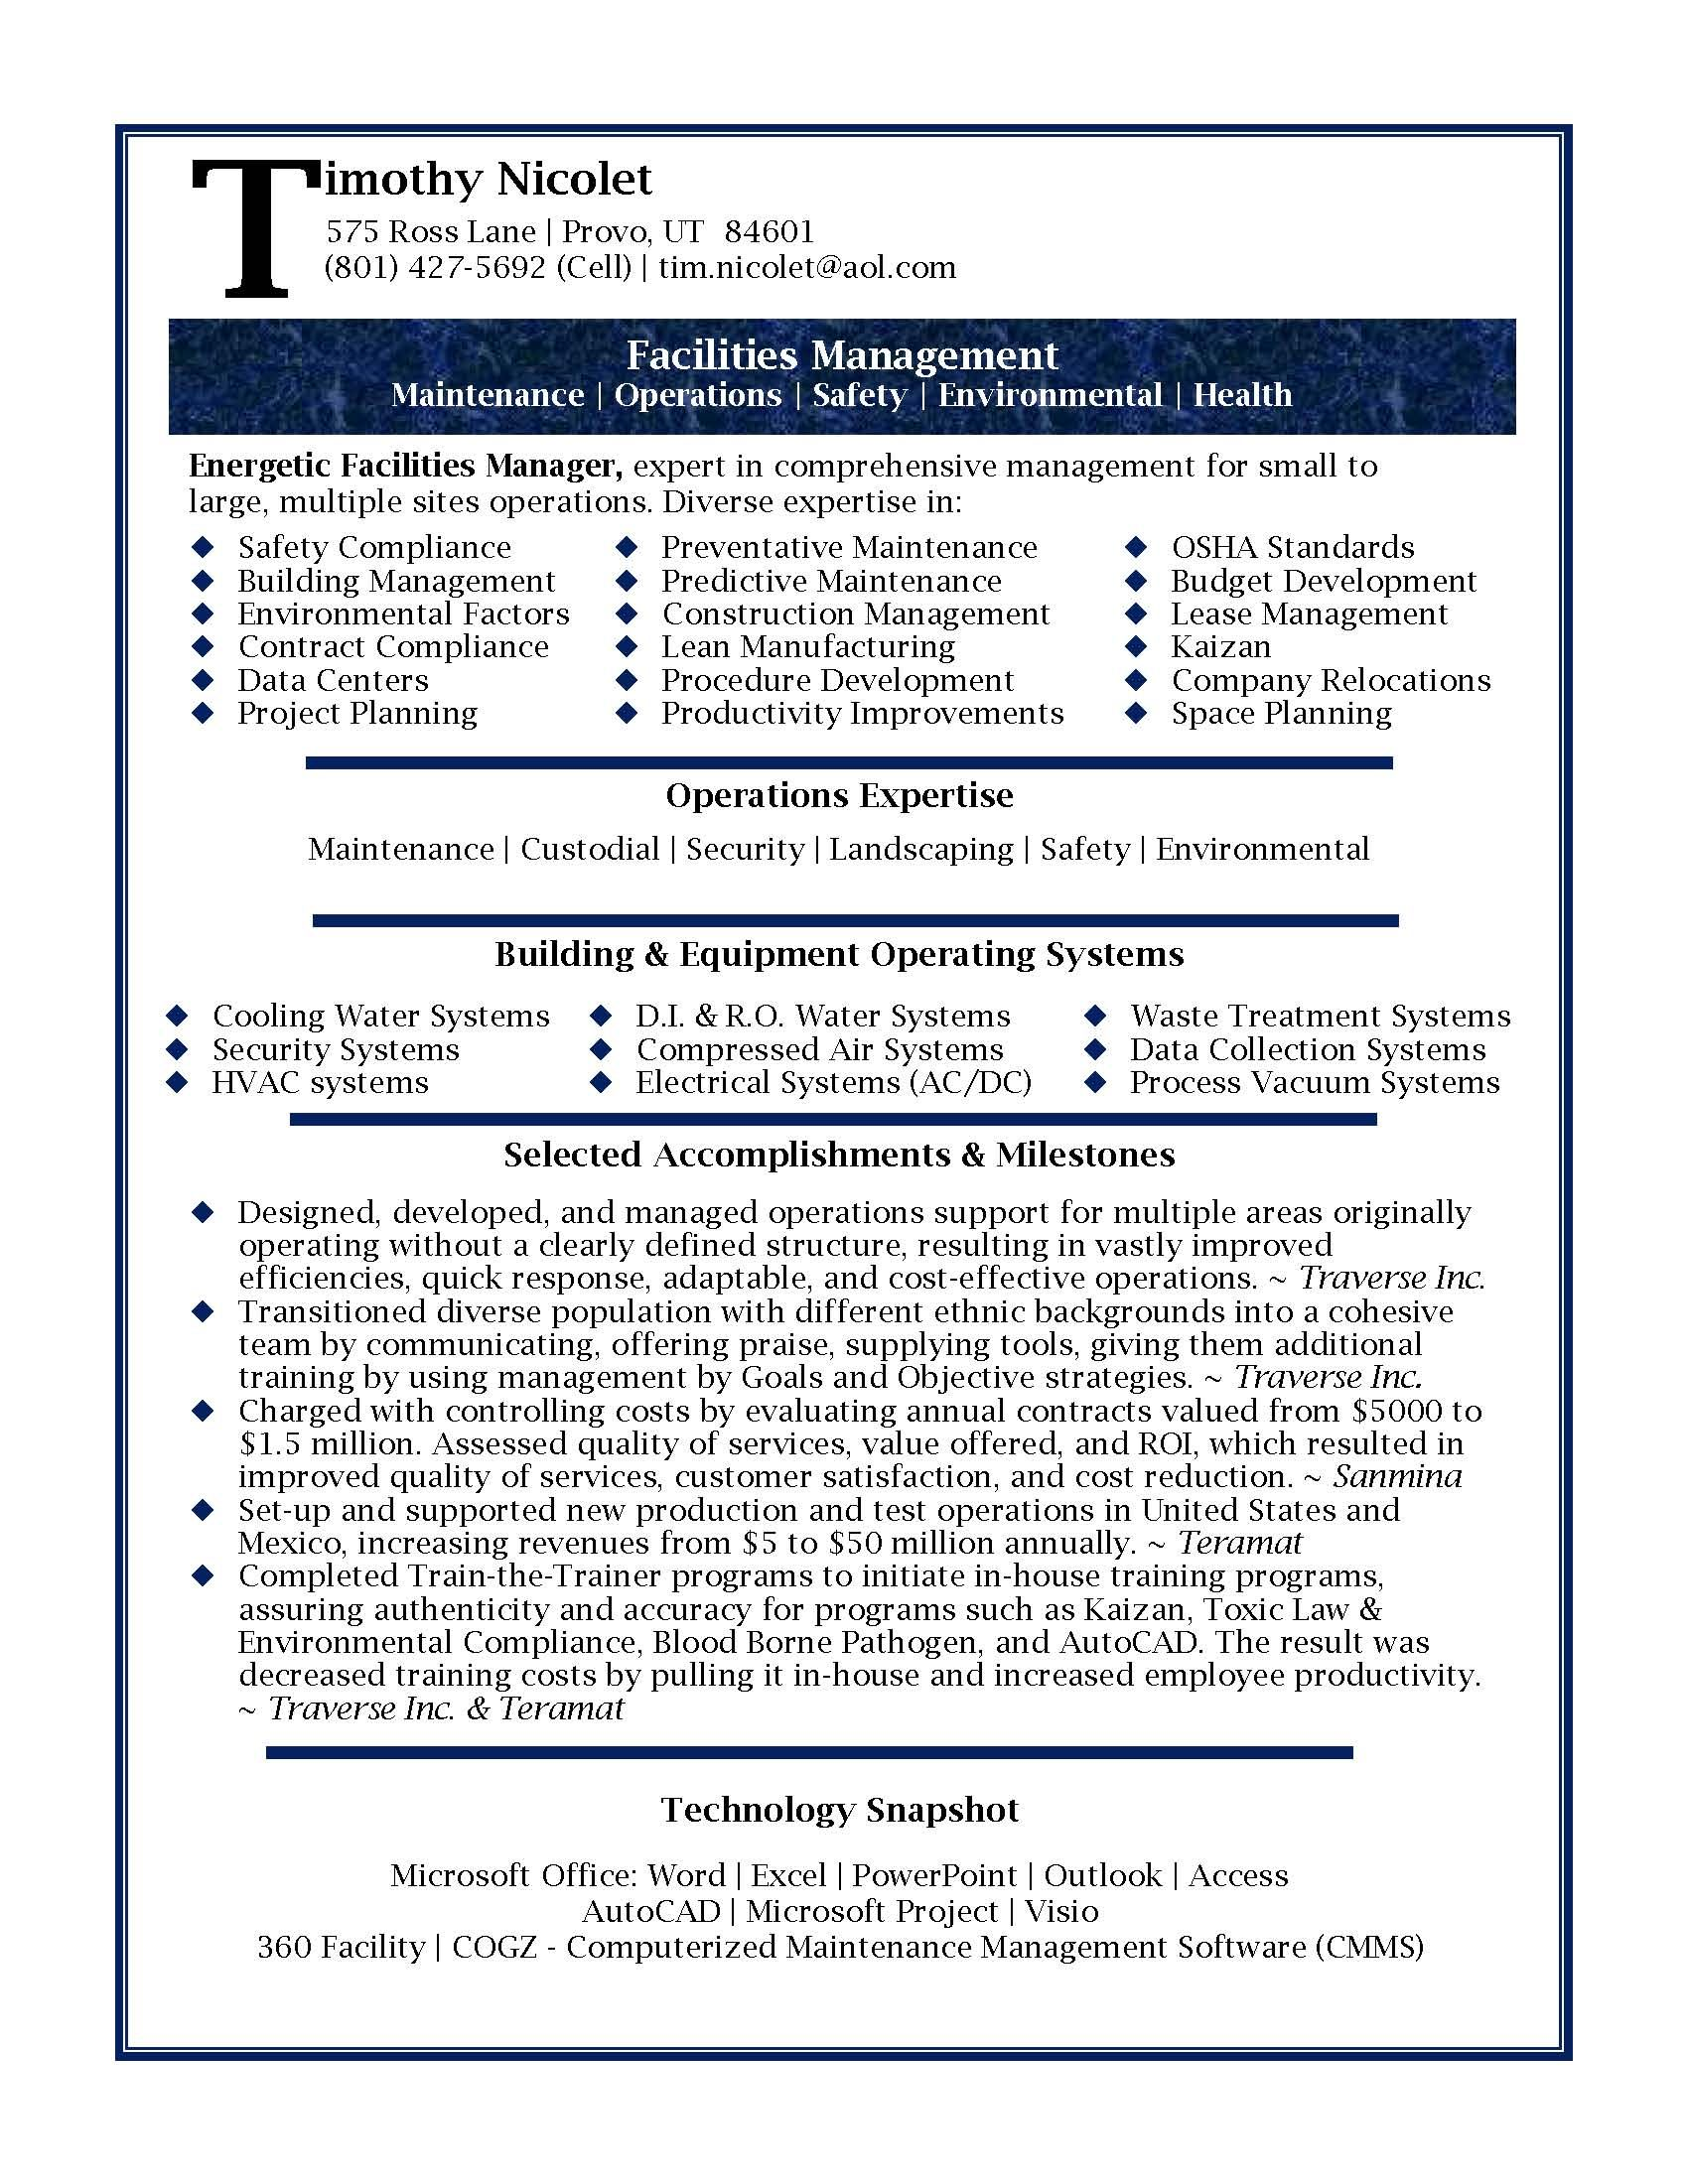 Professional Resume Samples by Julie Walraven, CMRW | Pinterest ...